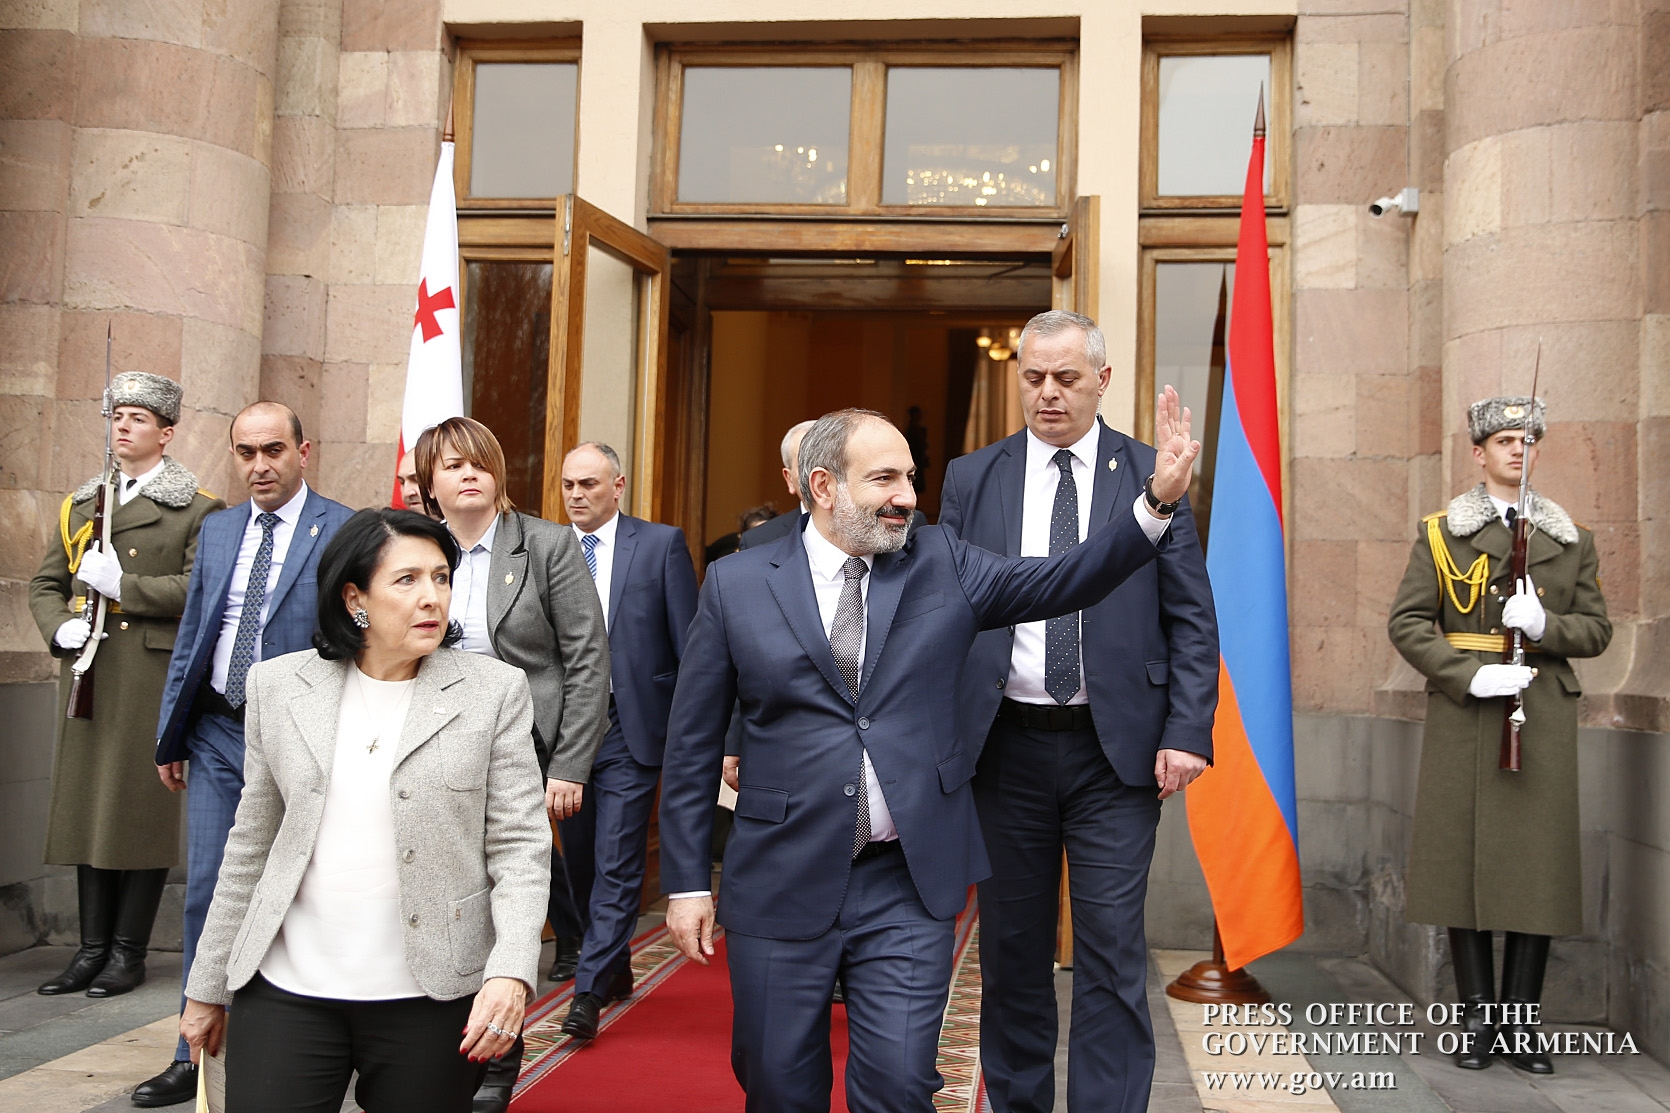 Zourabichvili and Pashinyan